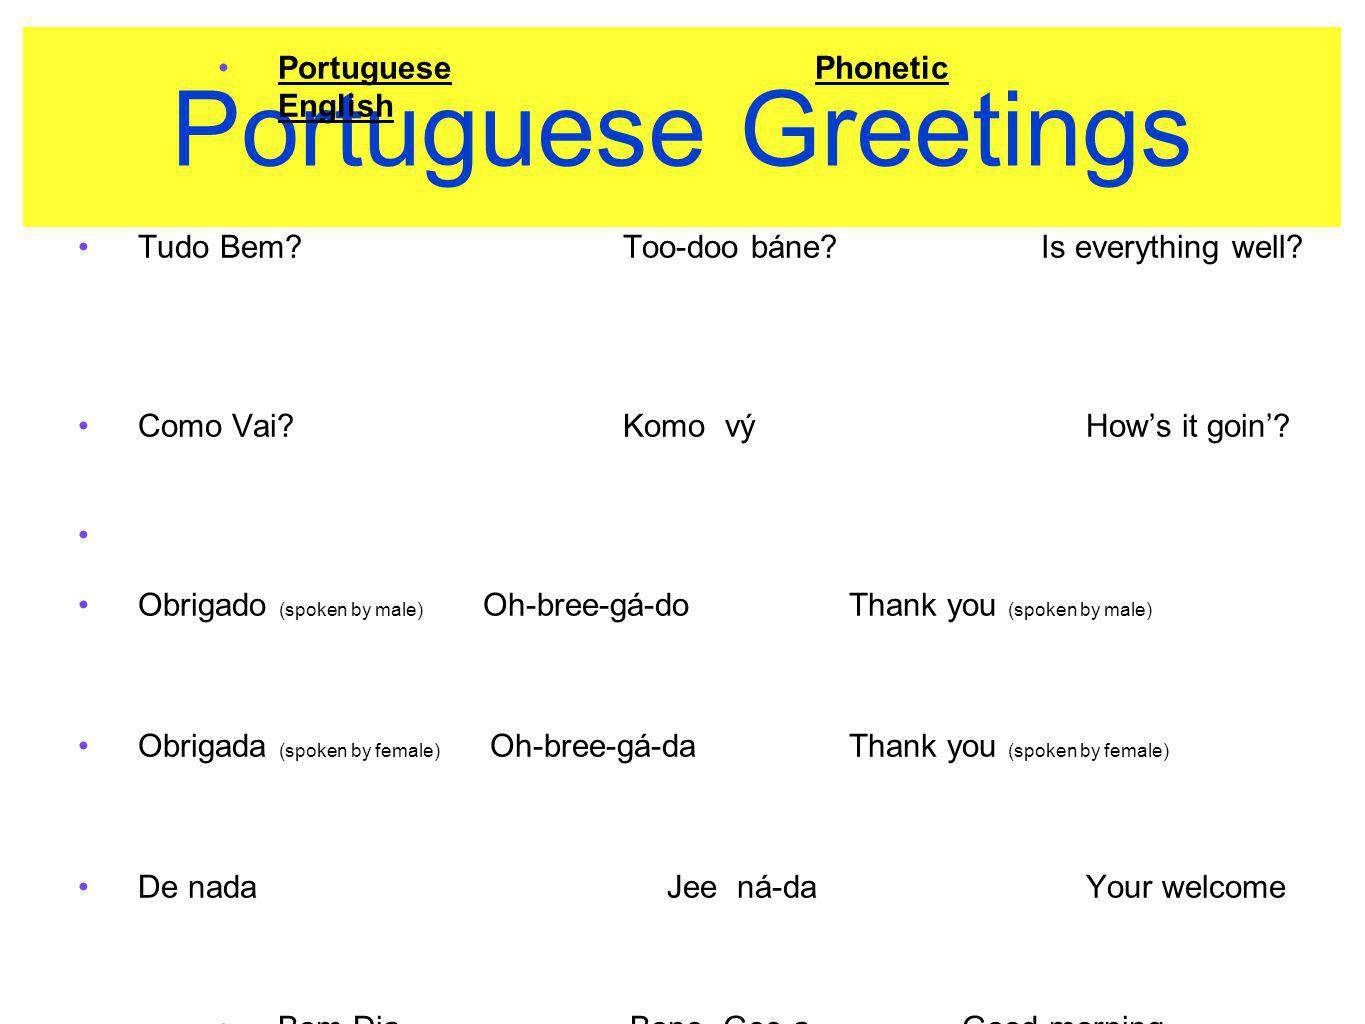 Portuguese Greetings Portuguese Phonetic English